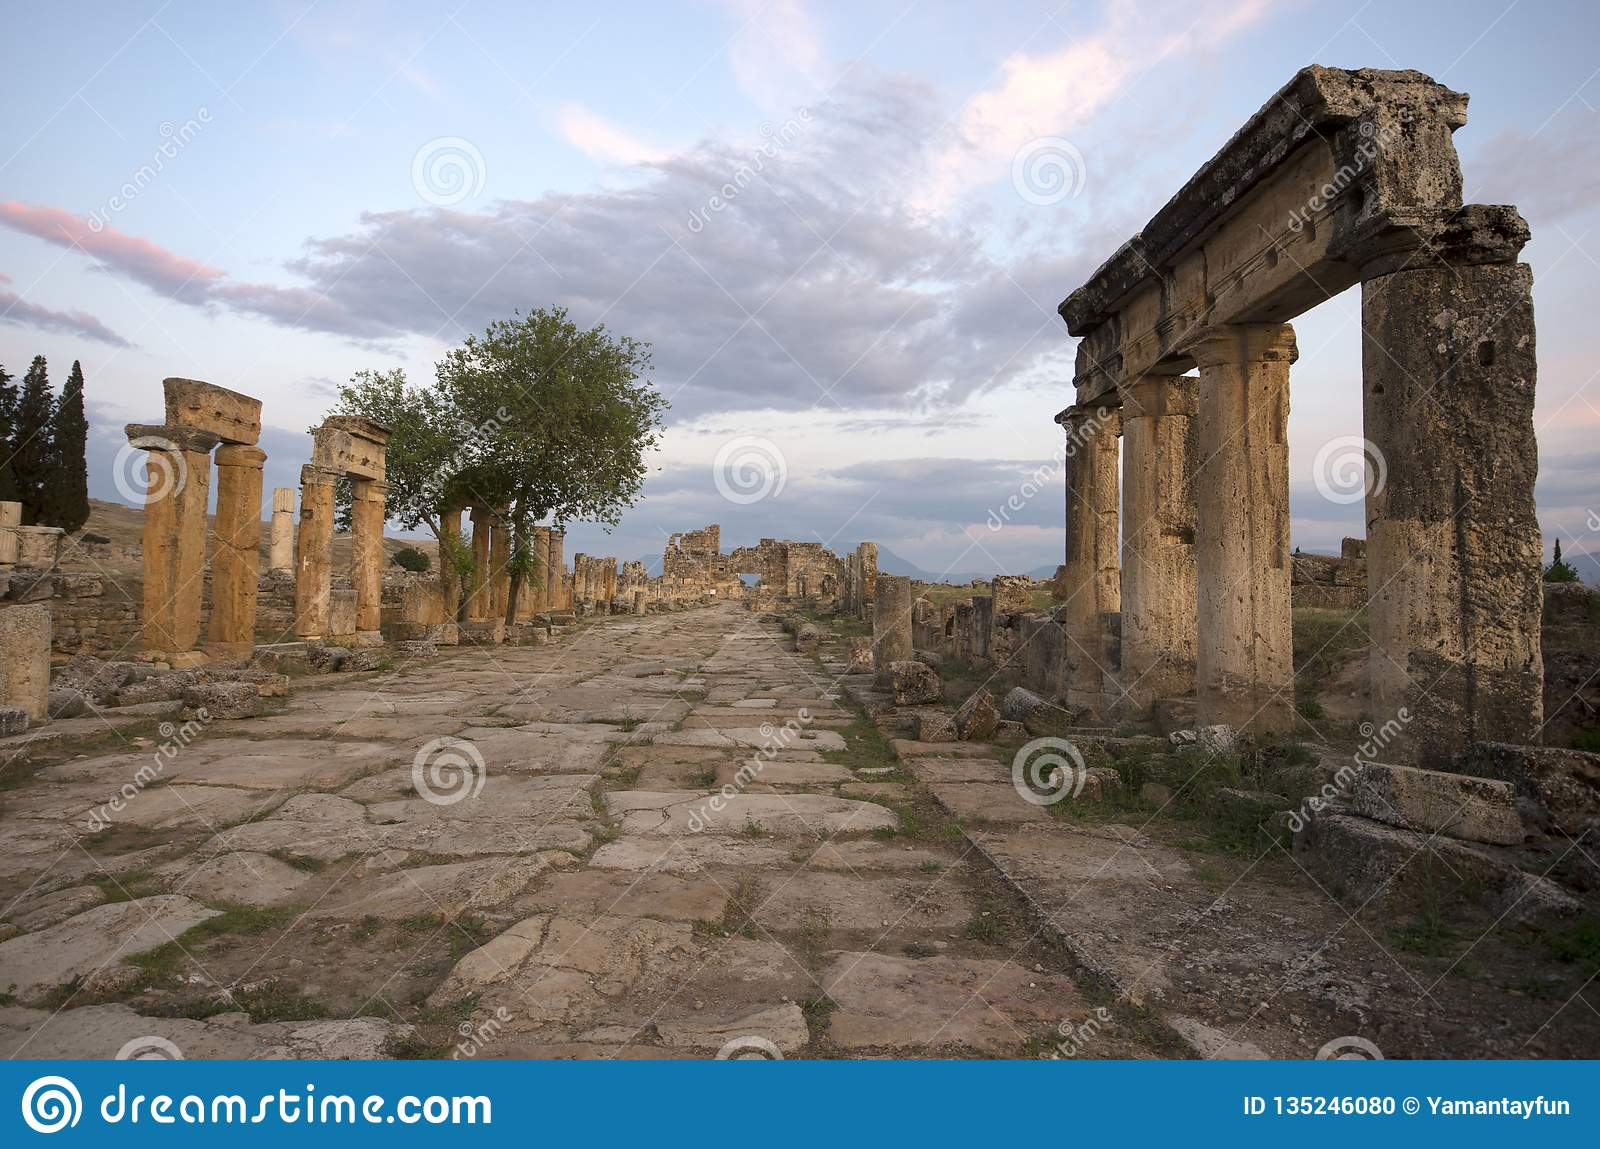 The street view of the ancient city Hierapolis, Pamukkale / Turkey